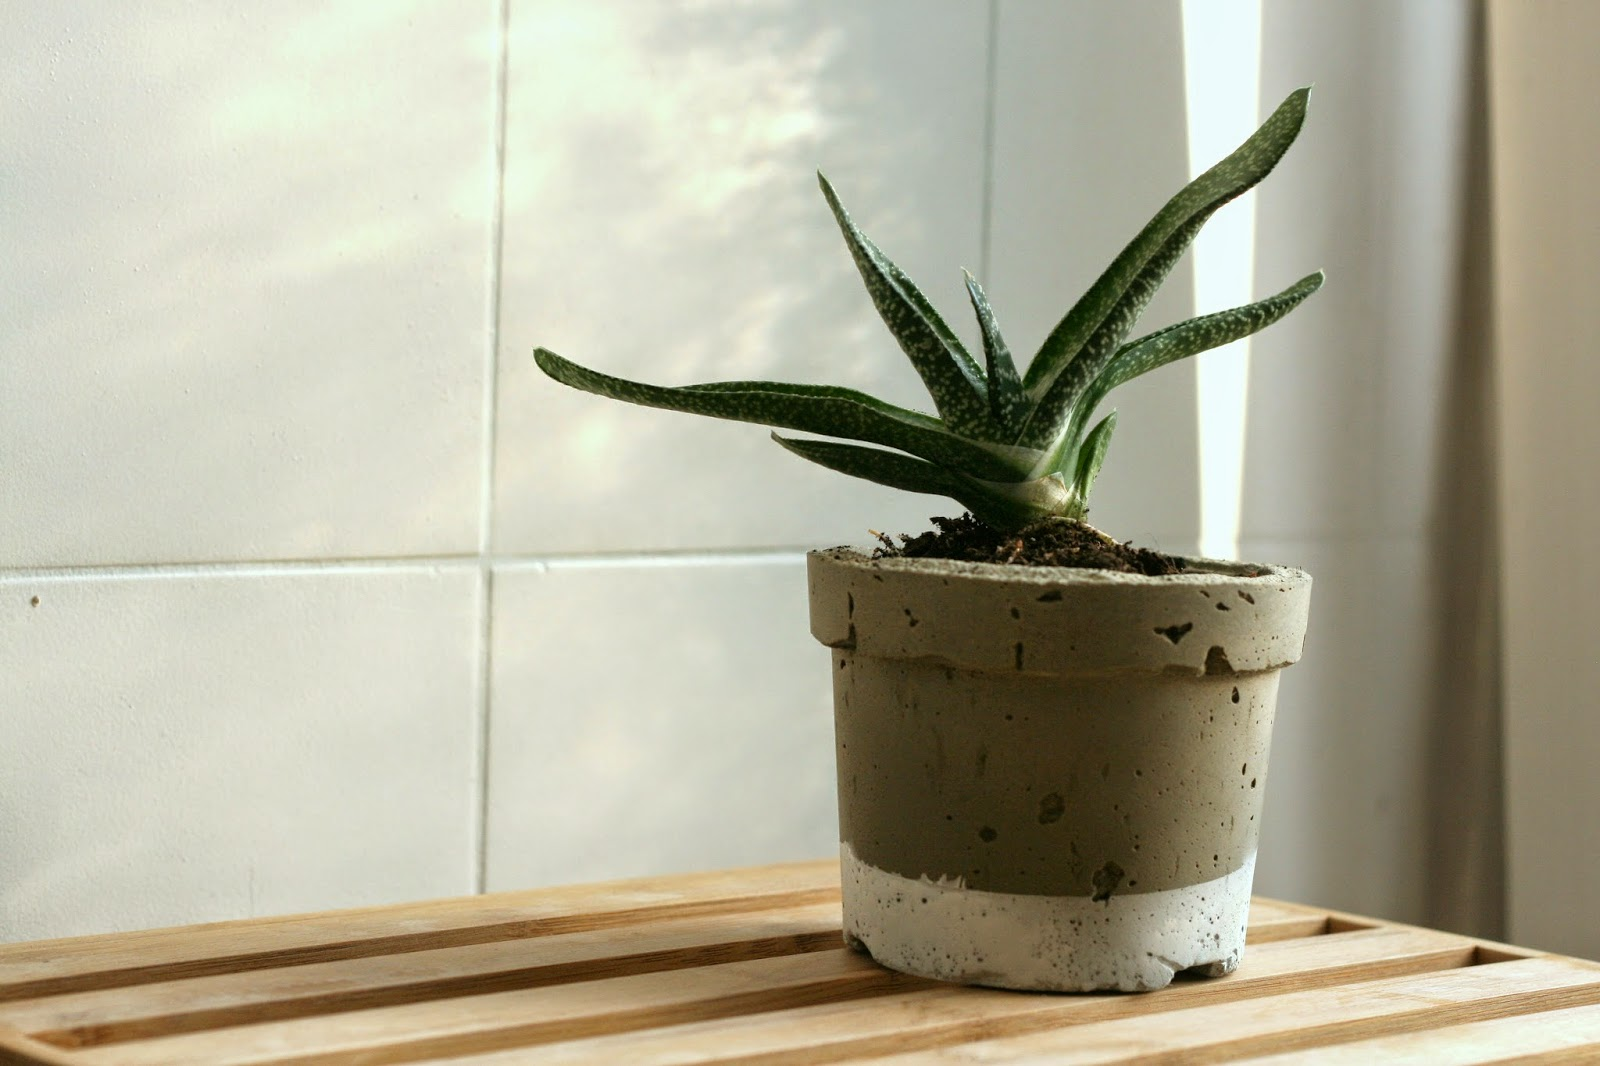 vida nullvier blumentopf aus beton. Black Bedroom Furniture Sets. Home Design Ideas